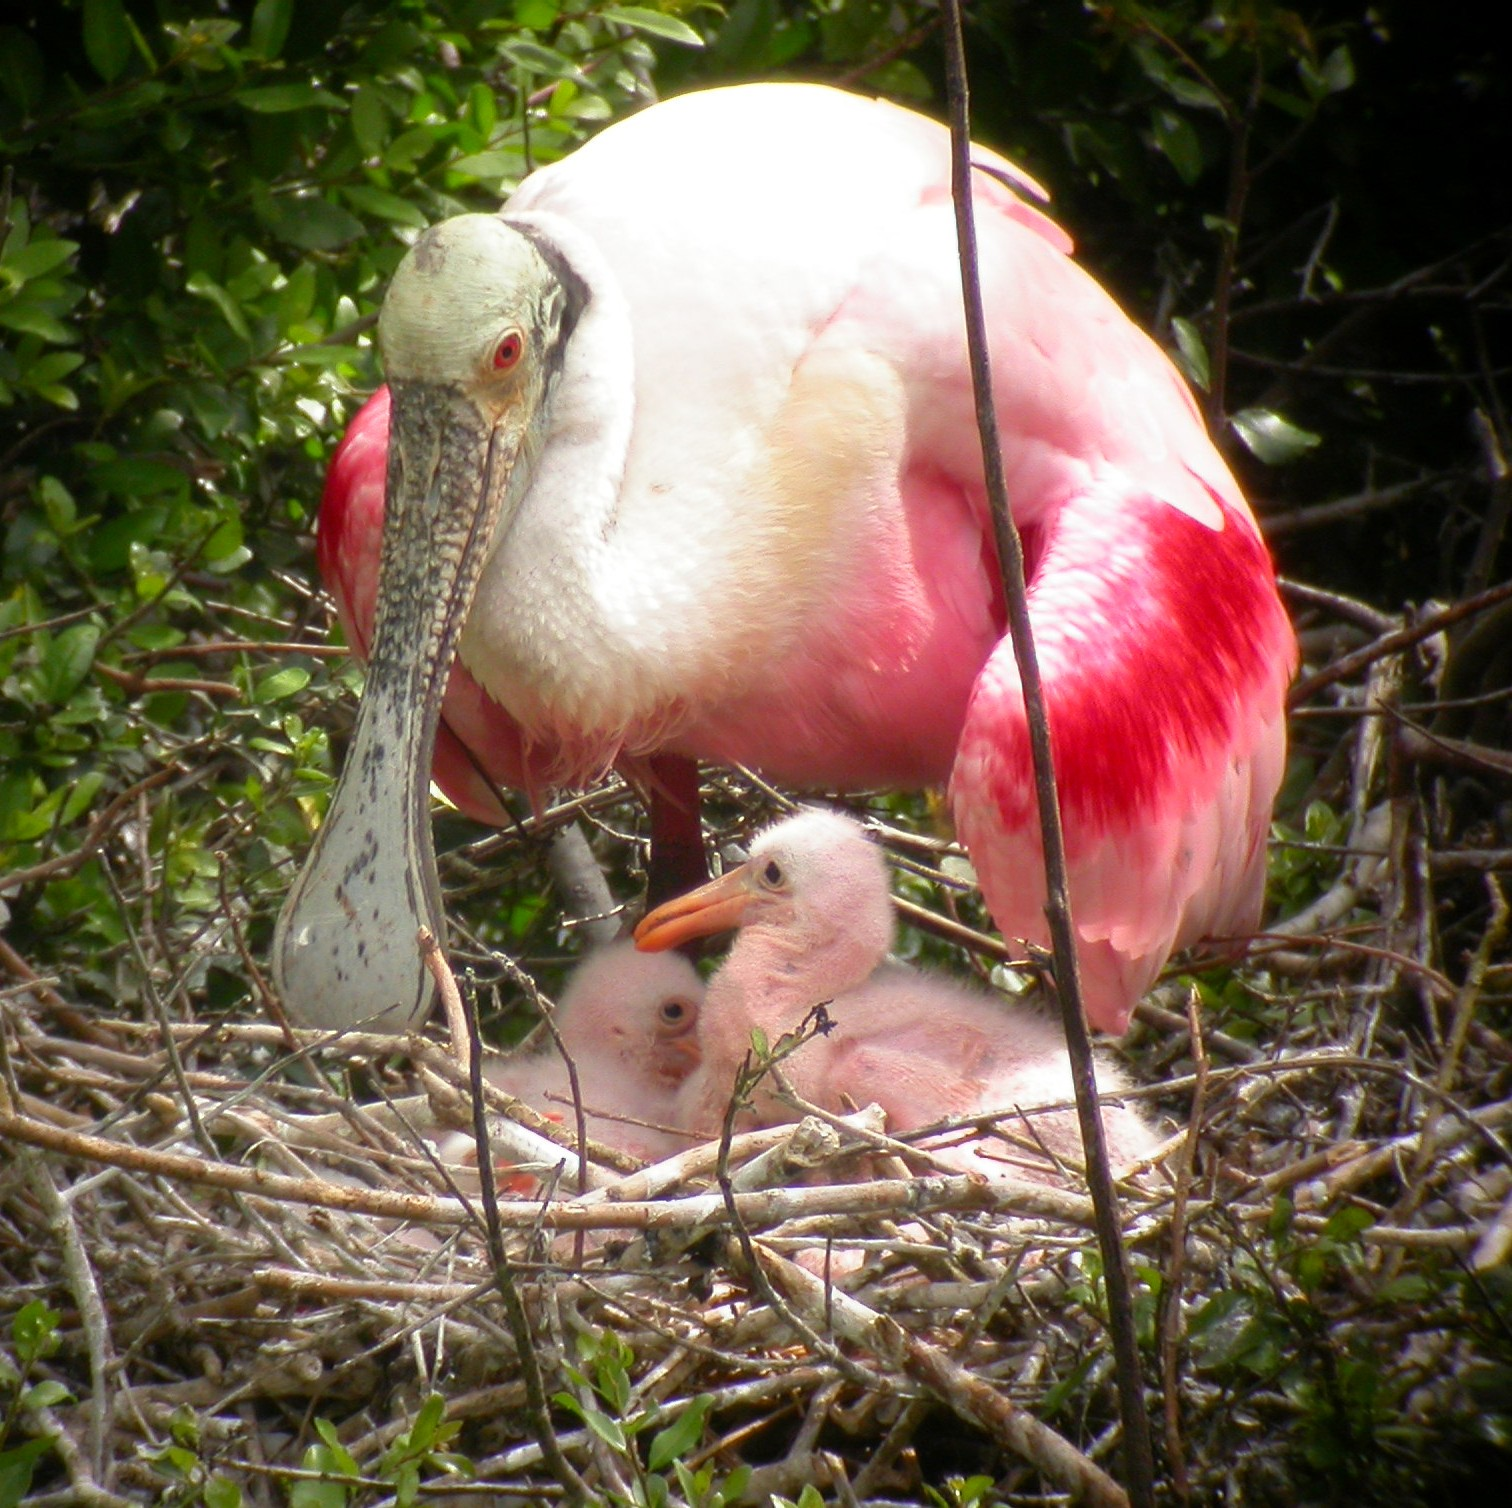 Roseate Spoonbill in nest with chicks.